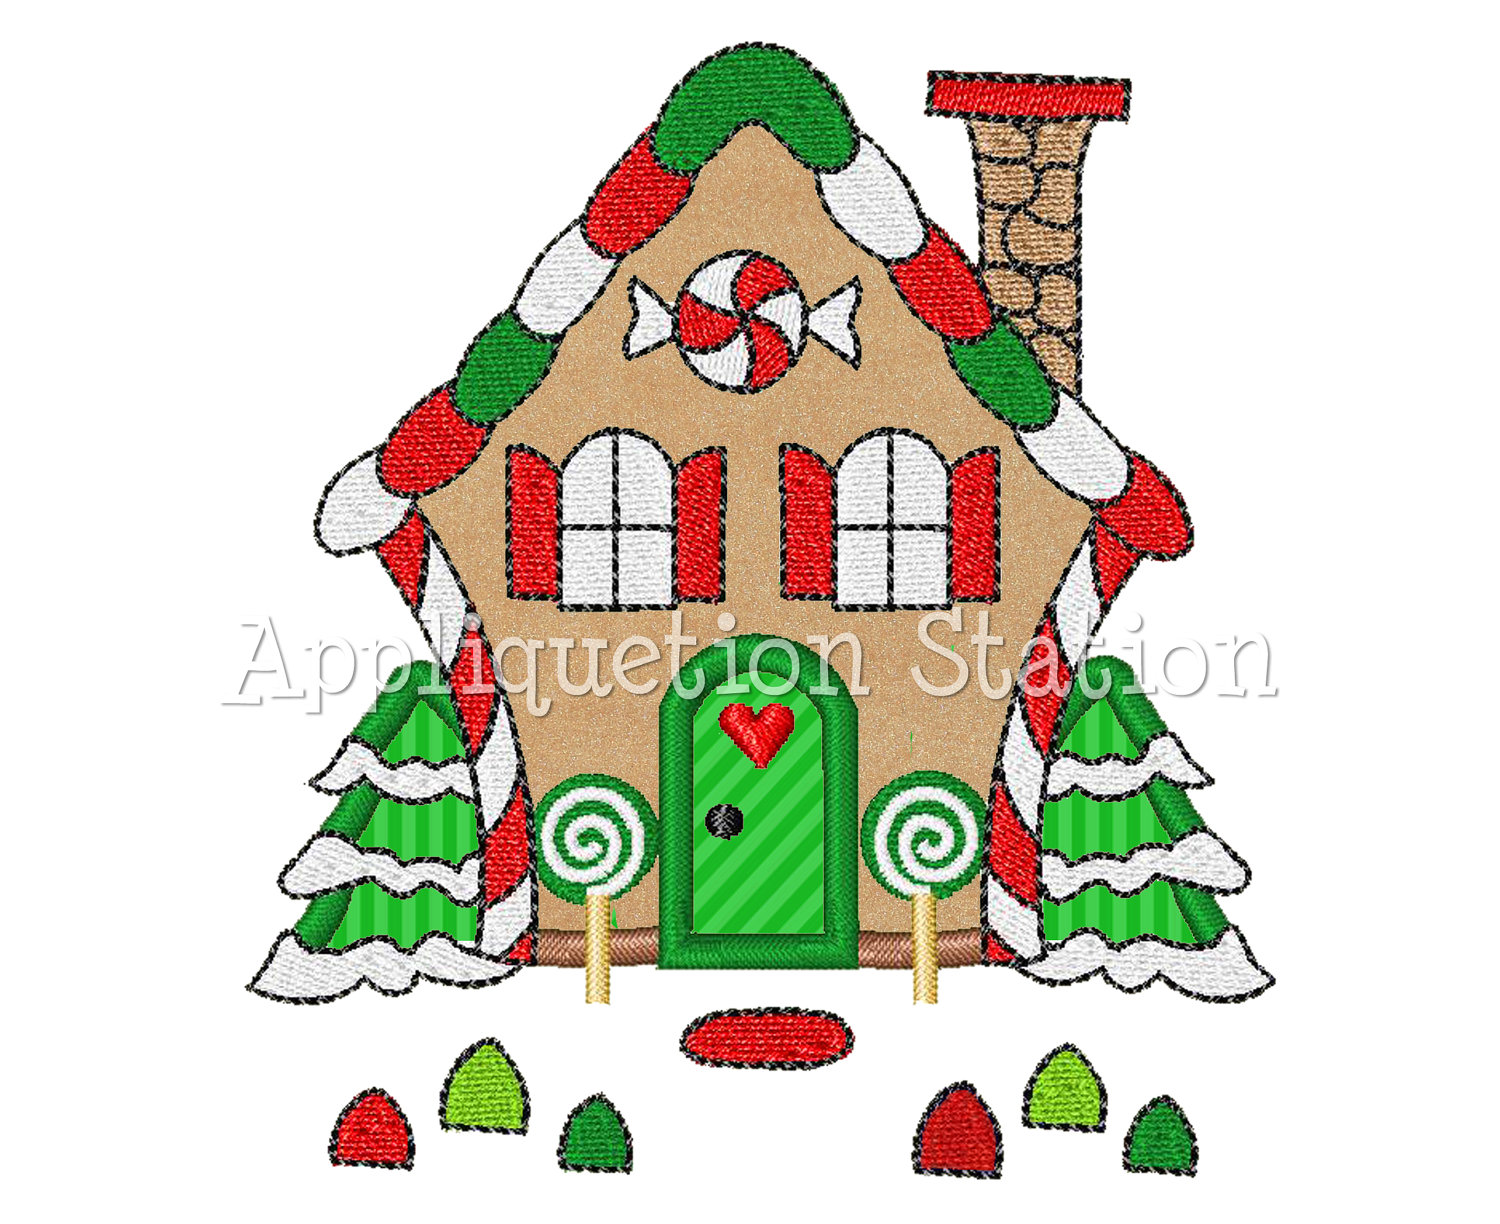 Candy Cane clipart gingerbread house candy Holiday Christmas Gingerbread cottage Candy